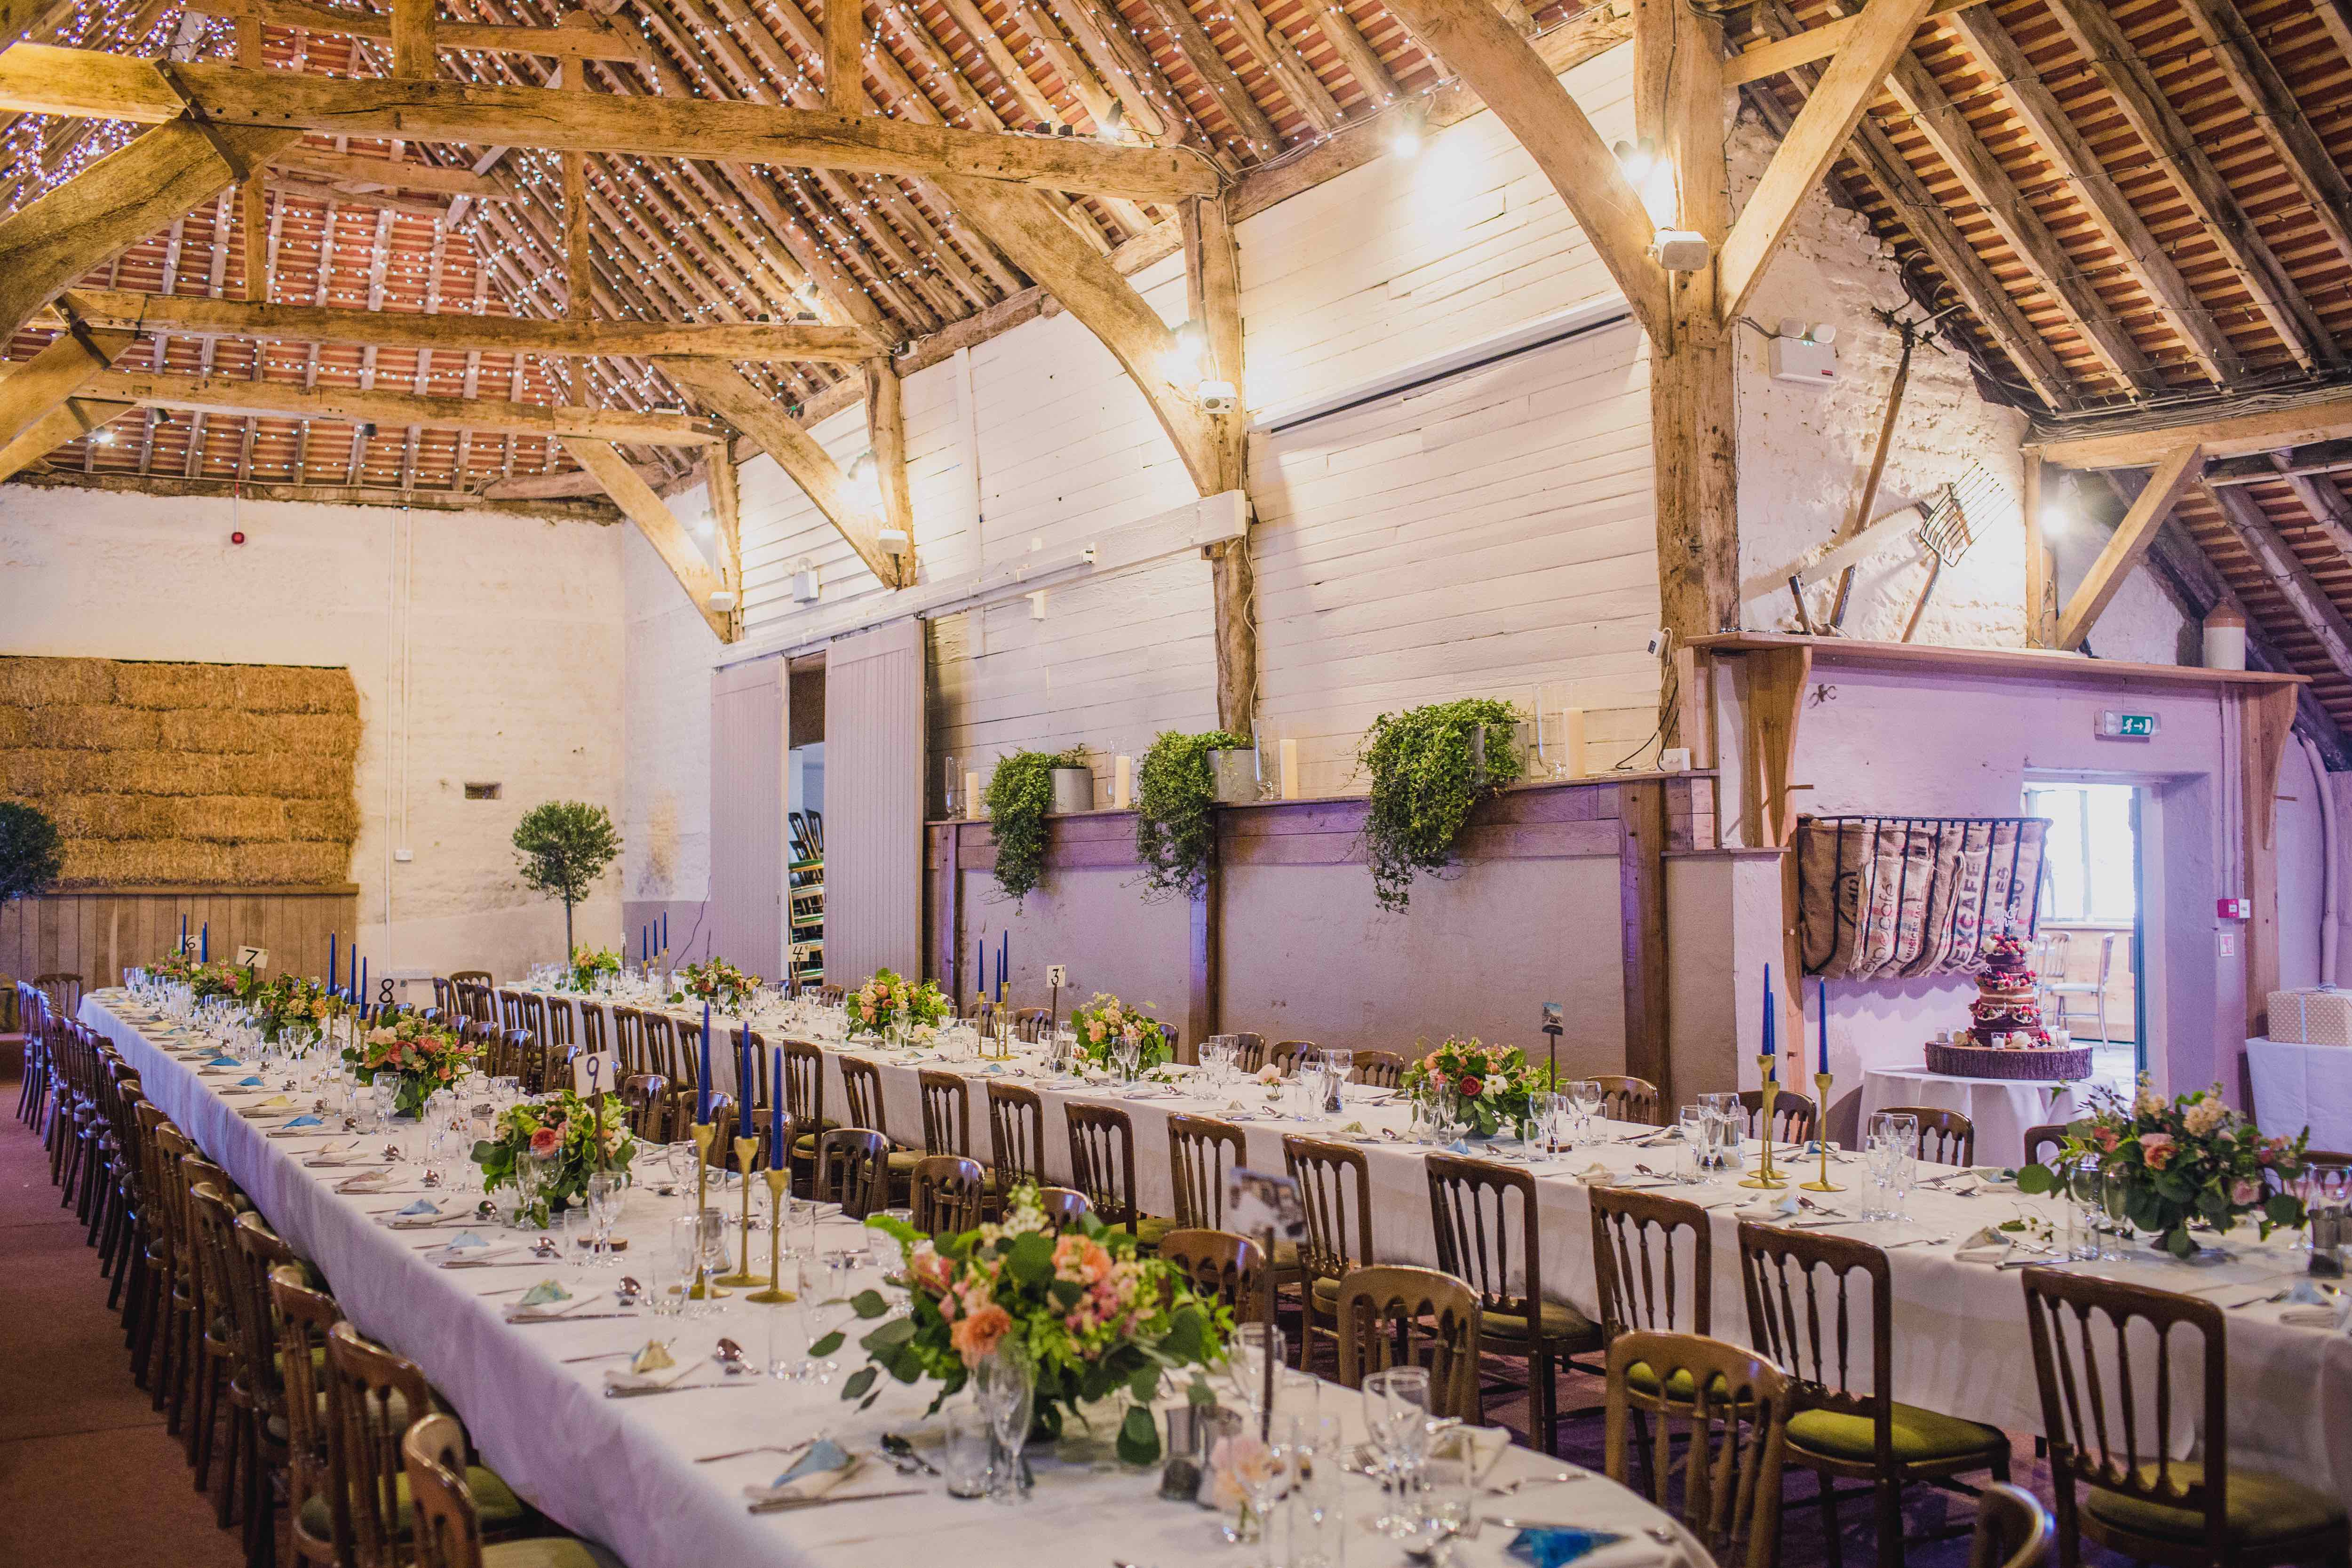 Pangdean Old Barn Wedding Venue